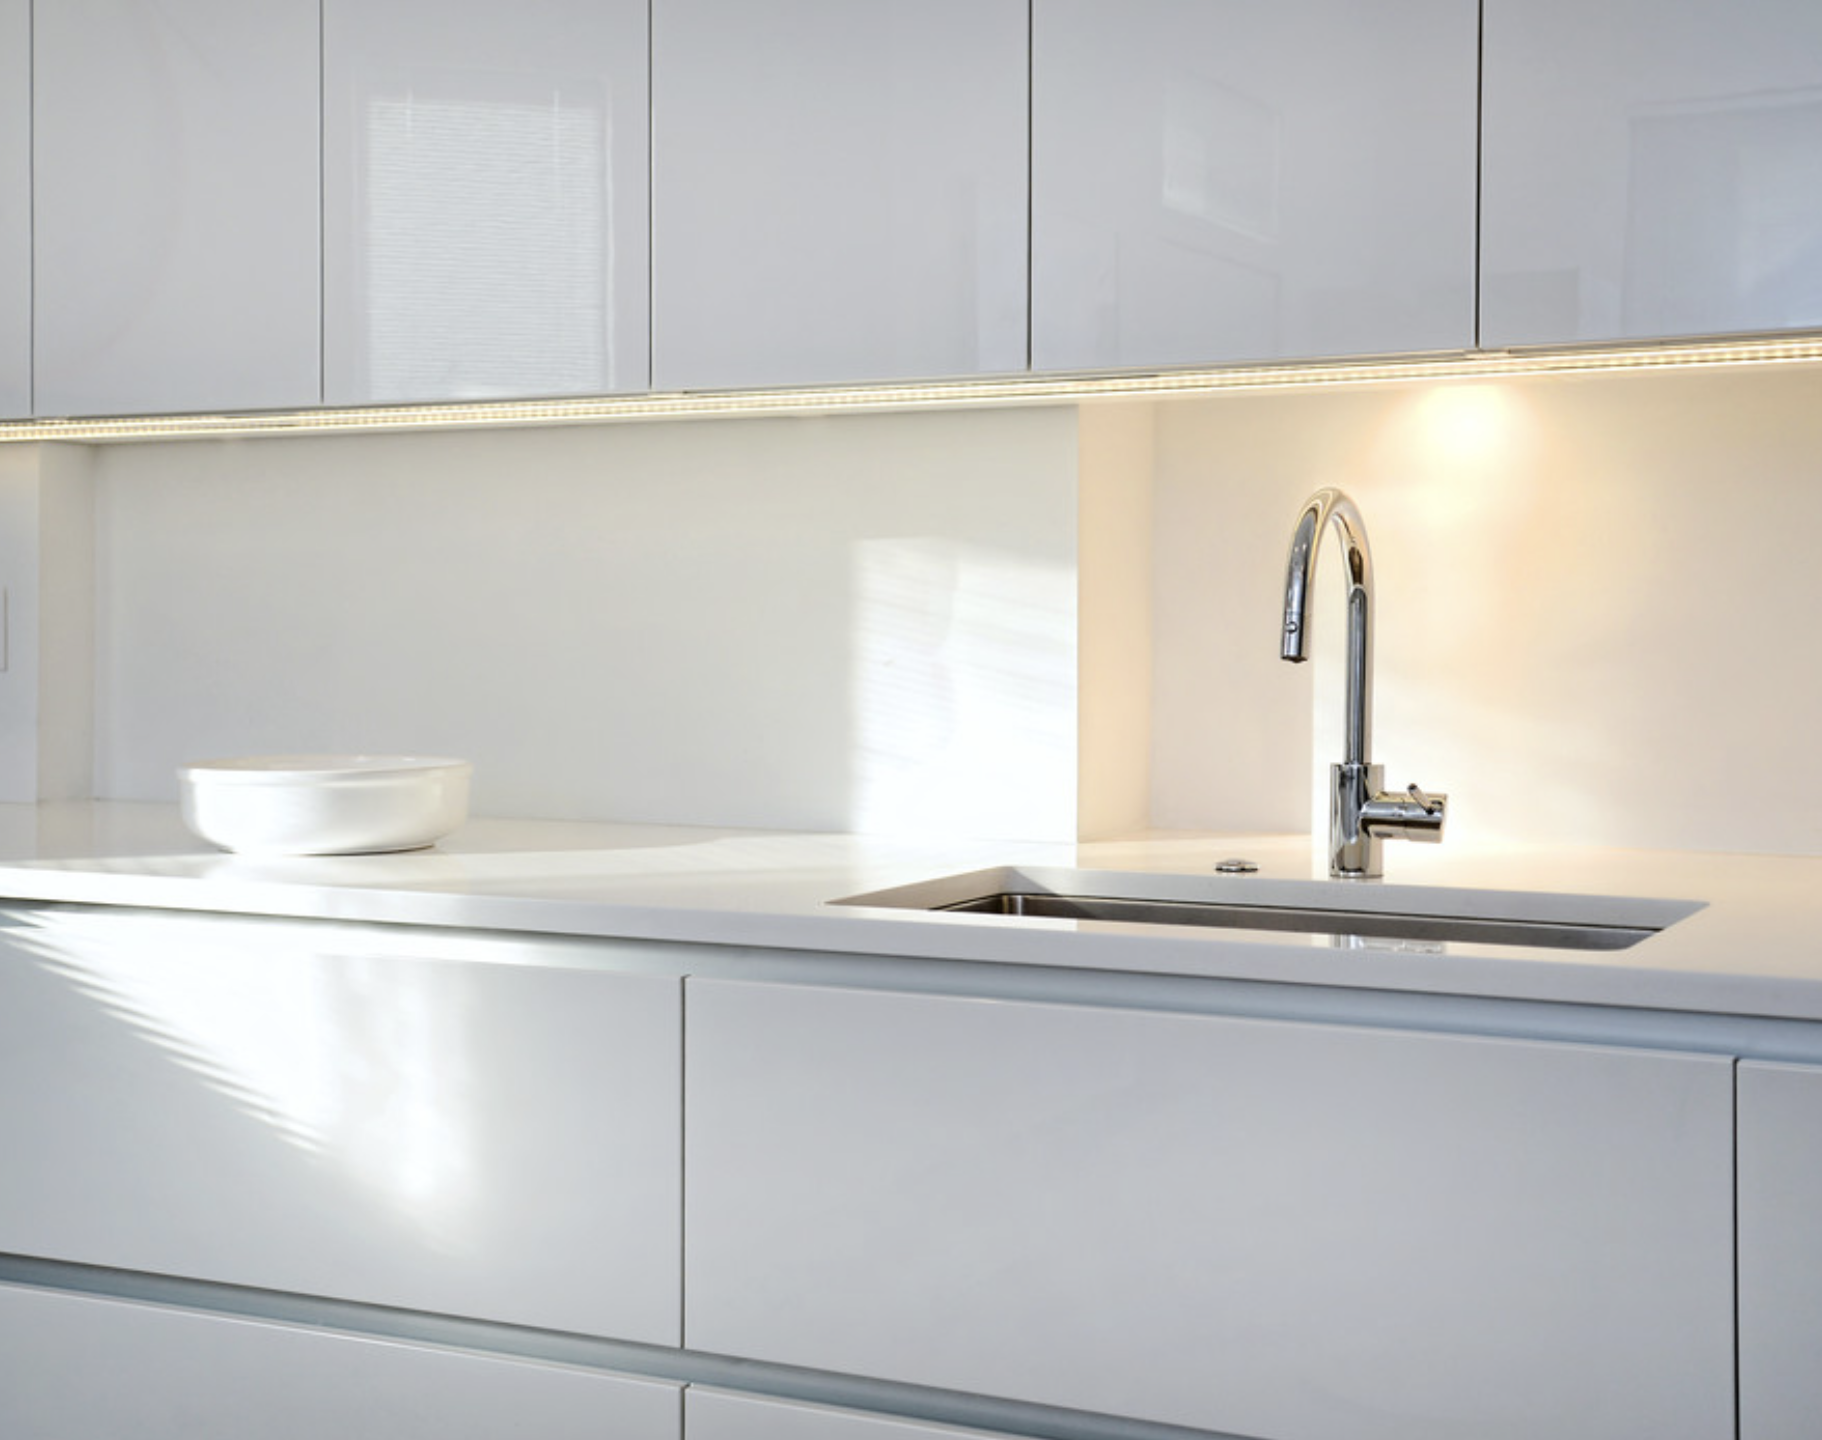 White Glossy Lacquered Kitchen By Zecchinon Designed By Archisesto Made In Italy Available At Archisesto Contemporary Kitchen House Interior House Design